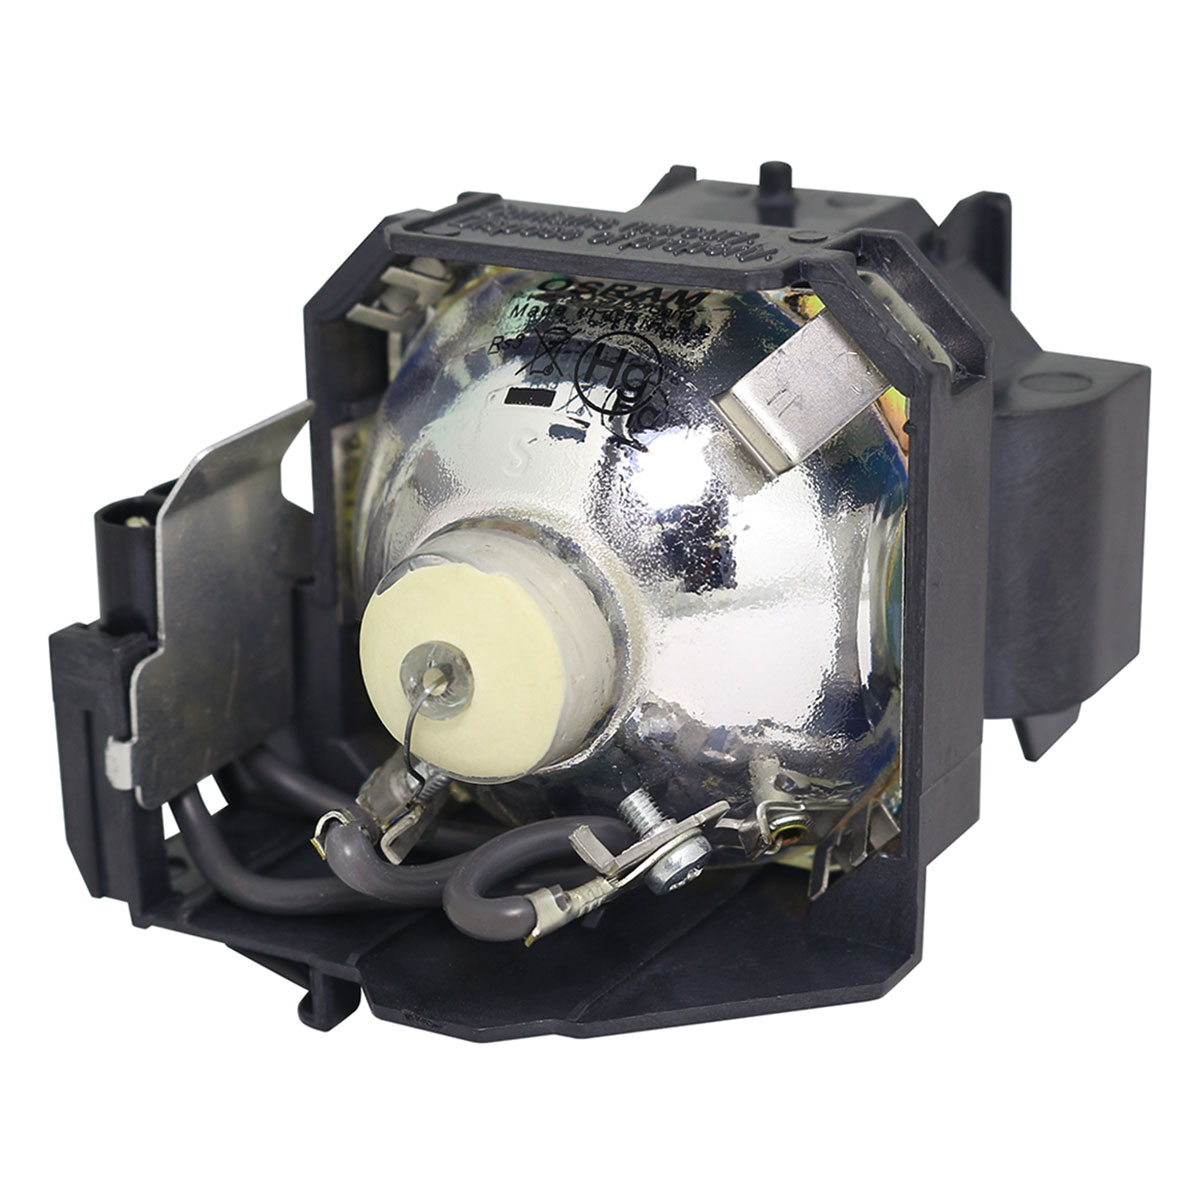 Lutema Economy for Epson PowerLite 1715c Projector Lamp with Housing - image 3 of 5